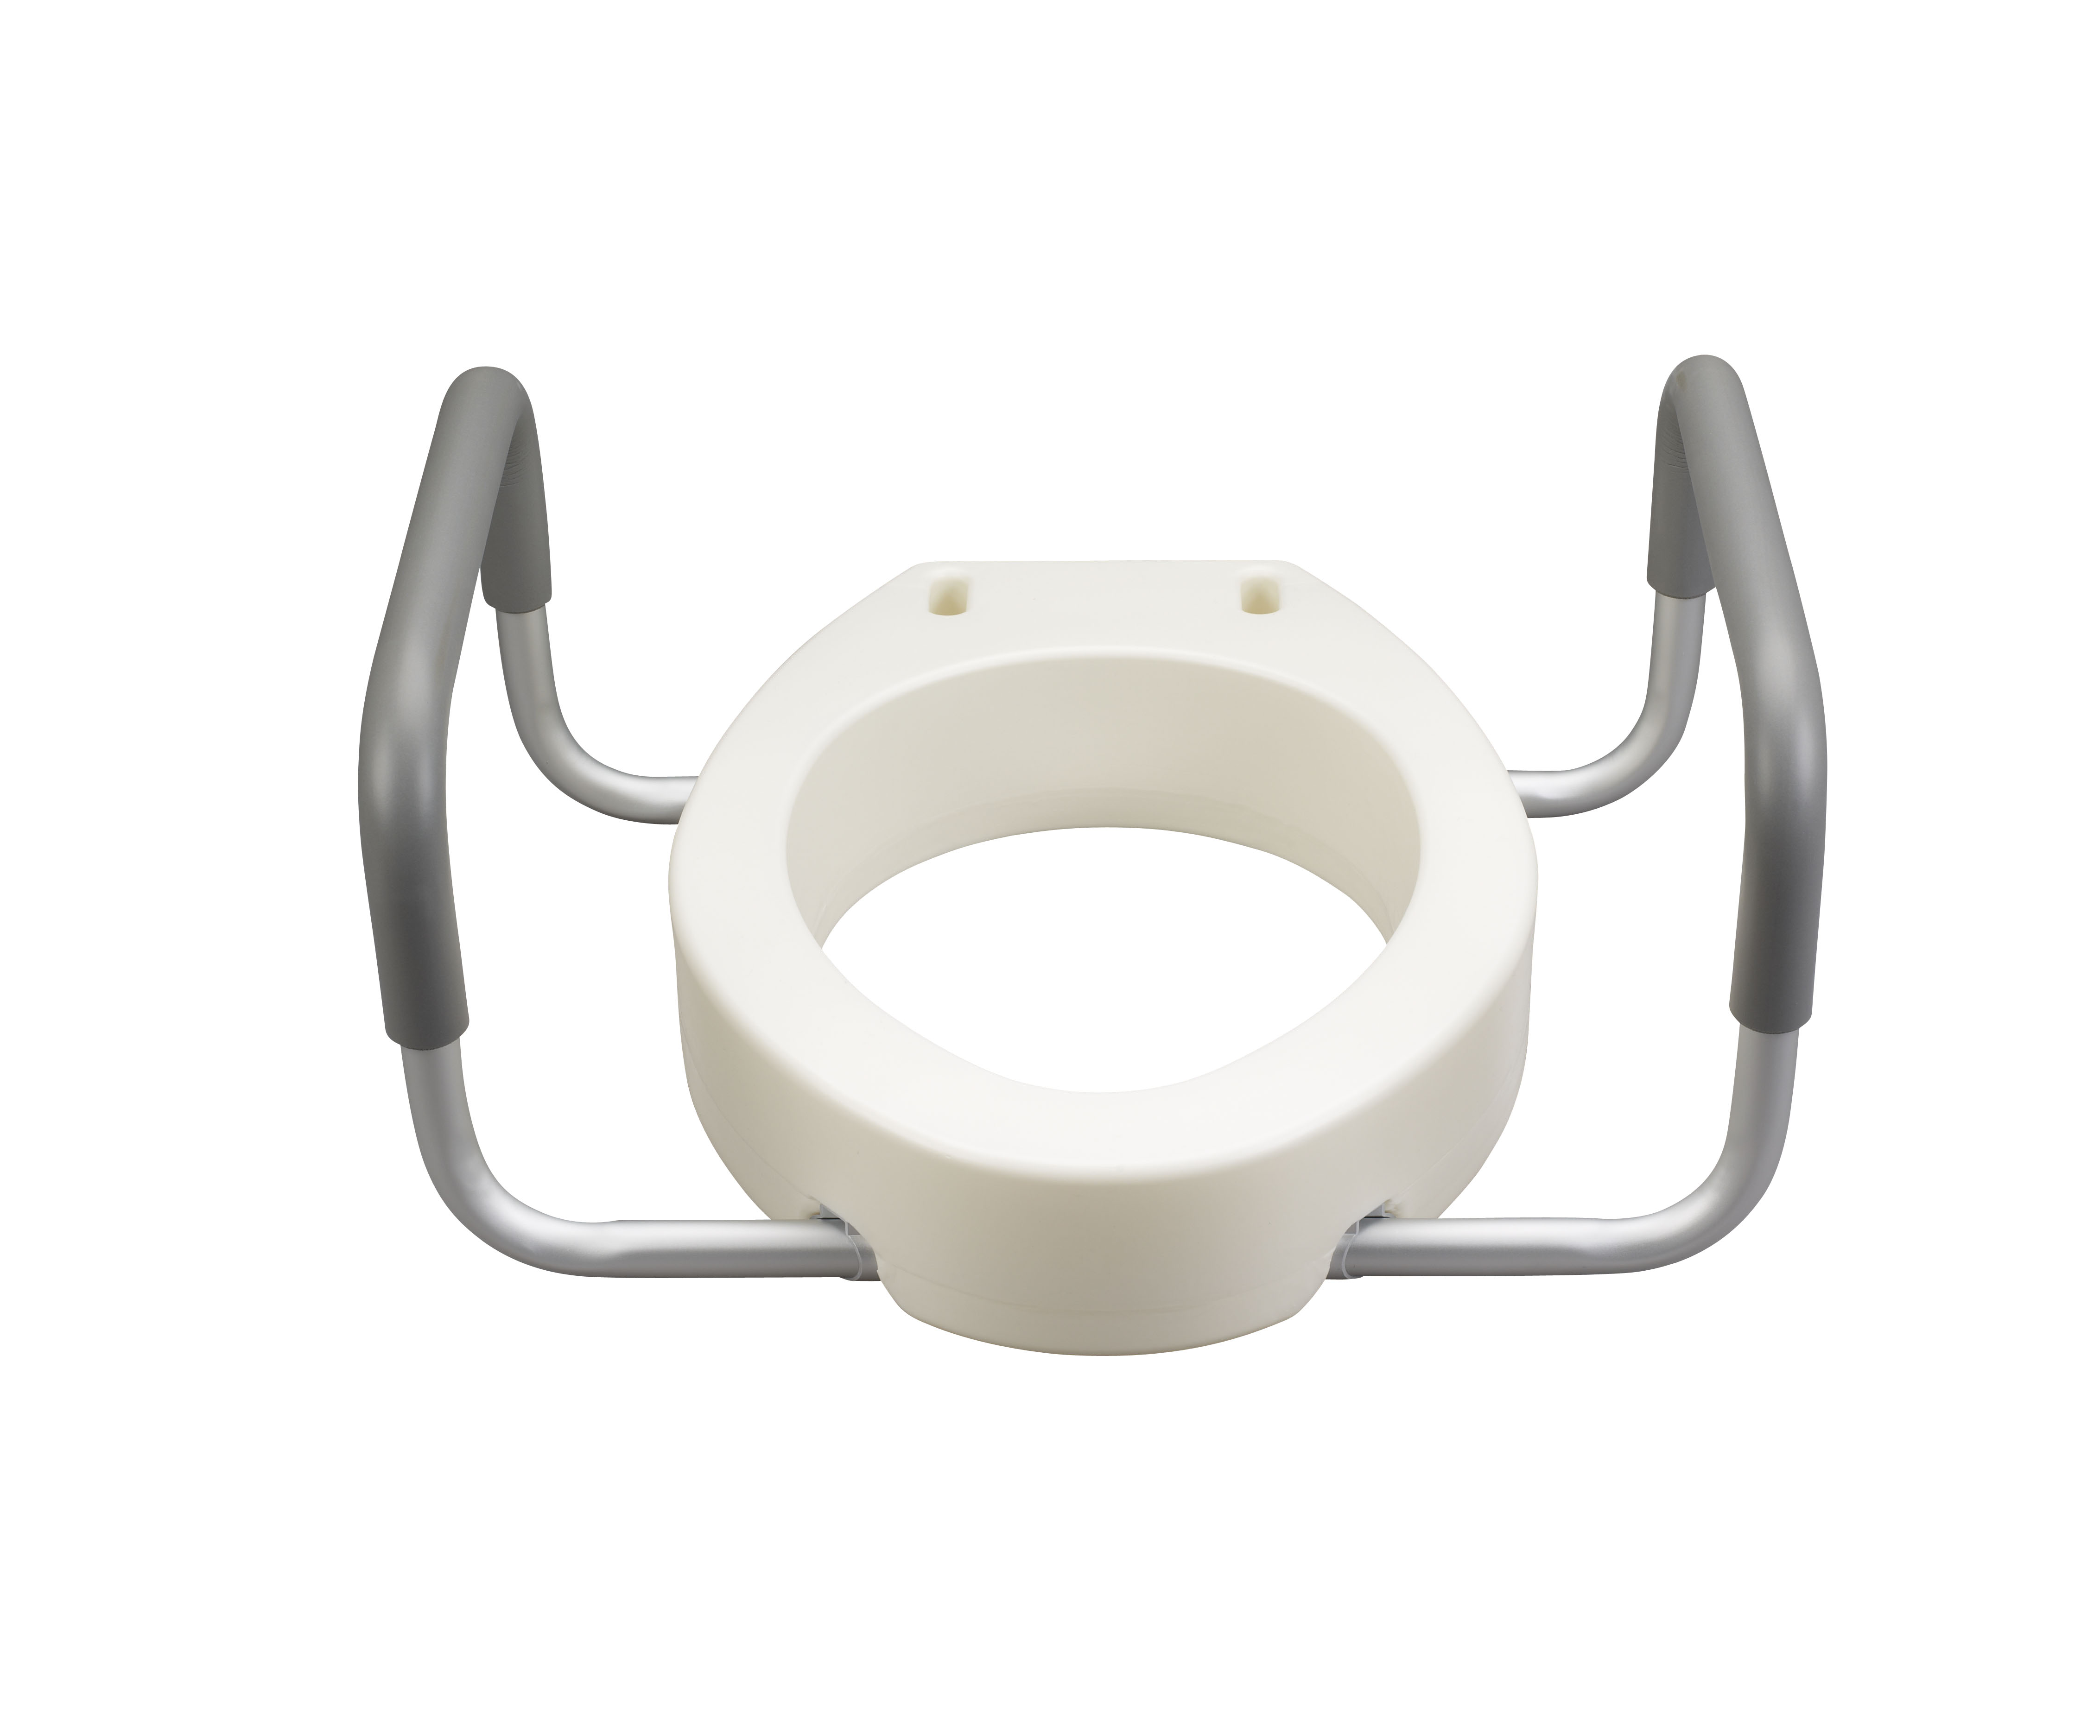 High Toilet Seat Toilet Booster Seat Avacare Medical